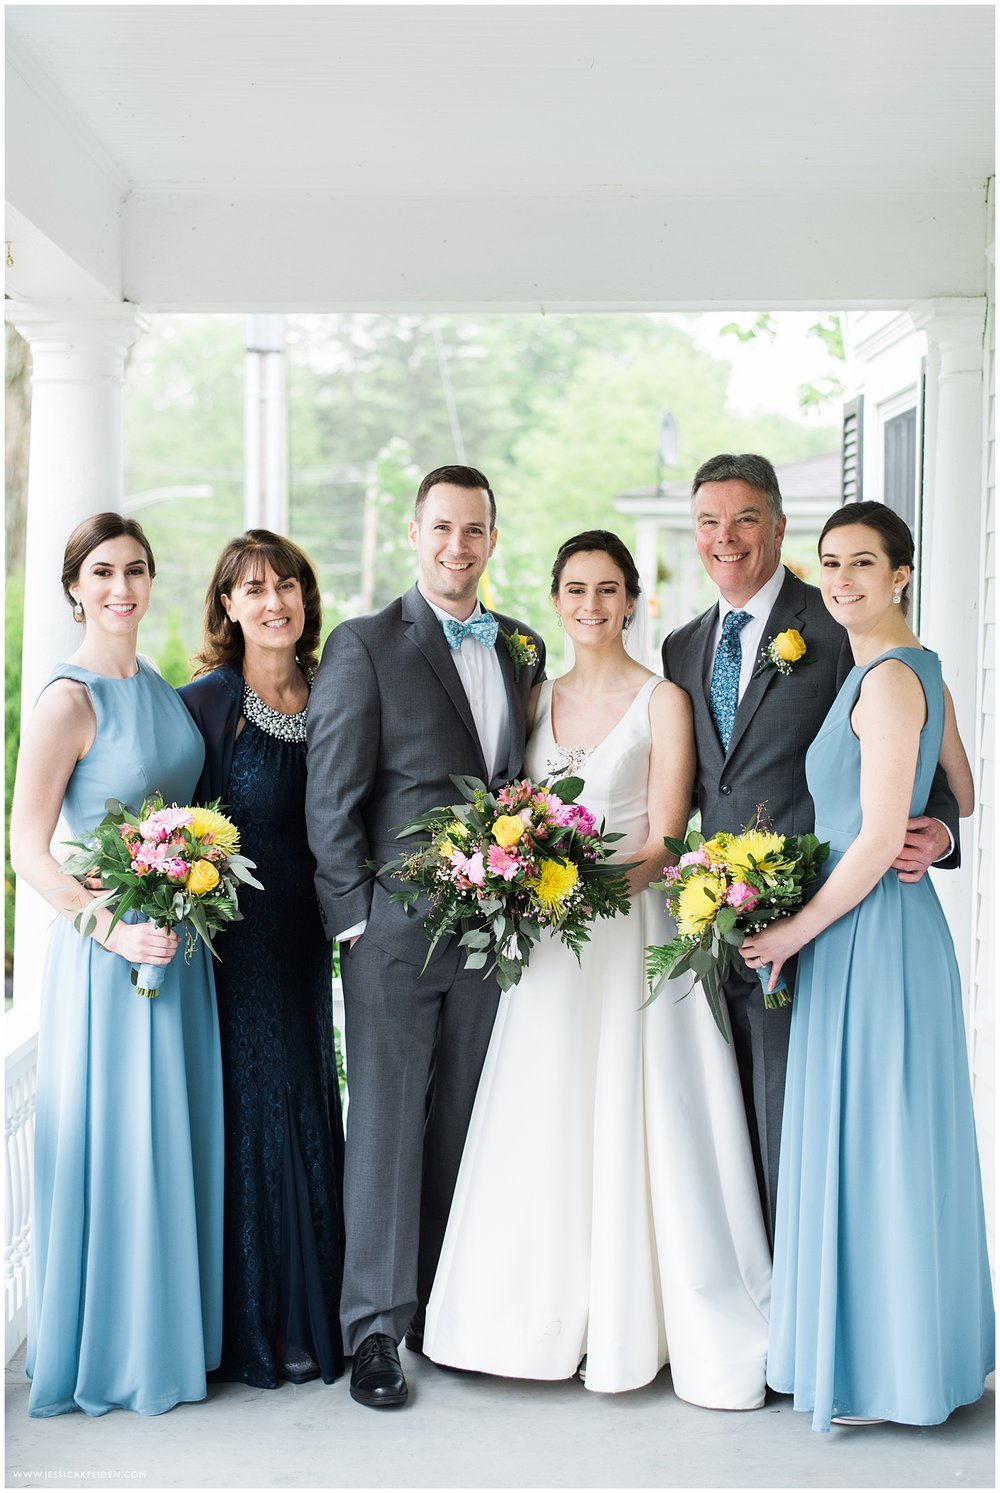 Jessica K Feiden Photography_Publick House Inn Wedding Photographer_0058.jpg